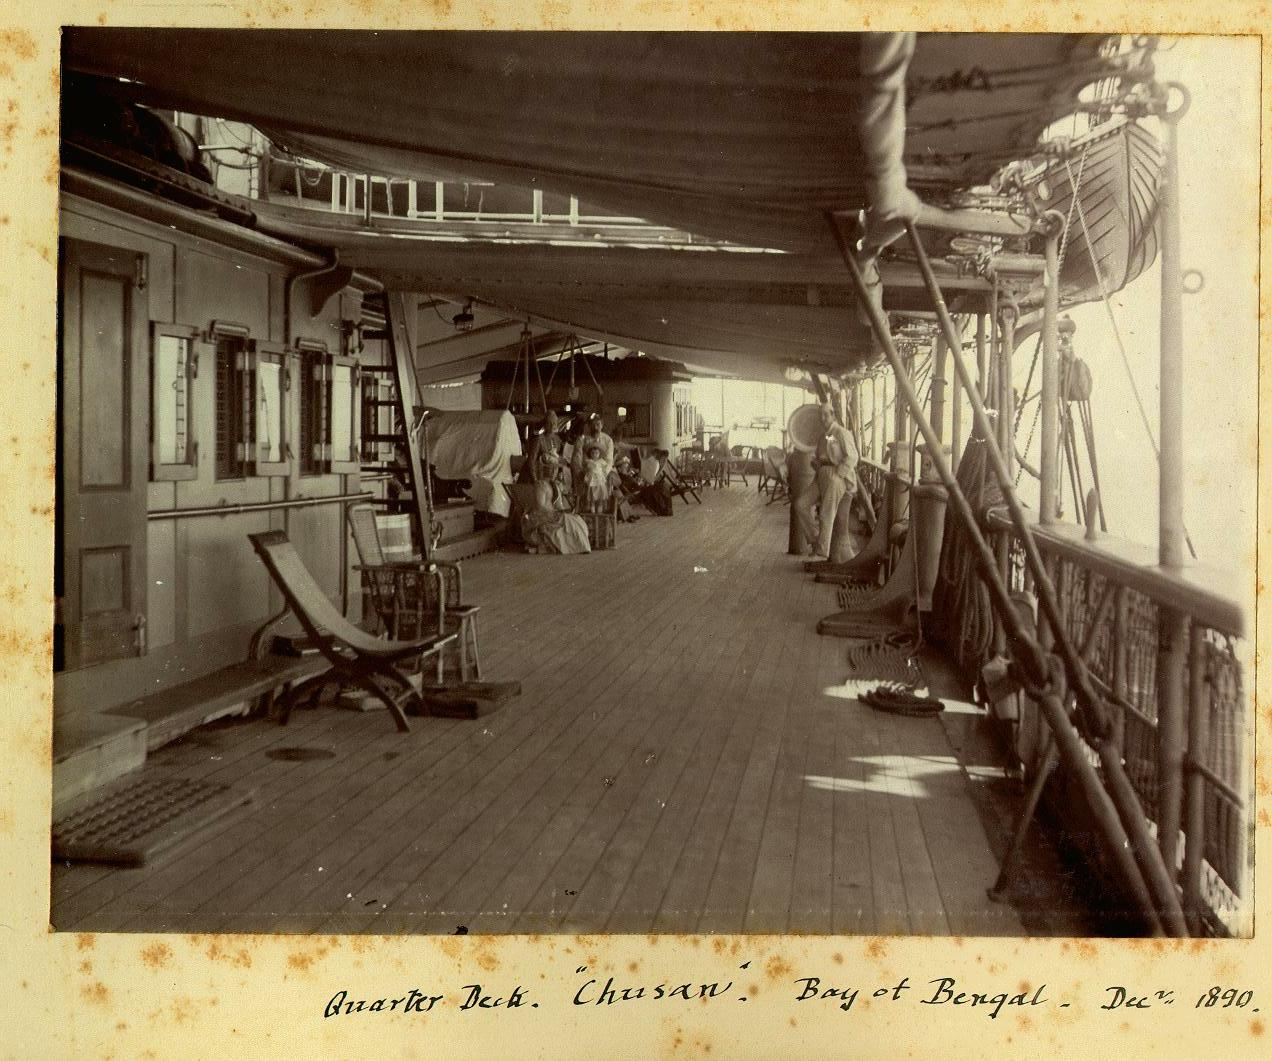 Passengers on the Quarter Deck, SS Chusan, in the Bay of Bengal, December 1890